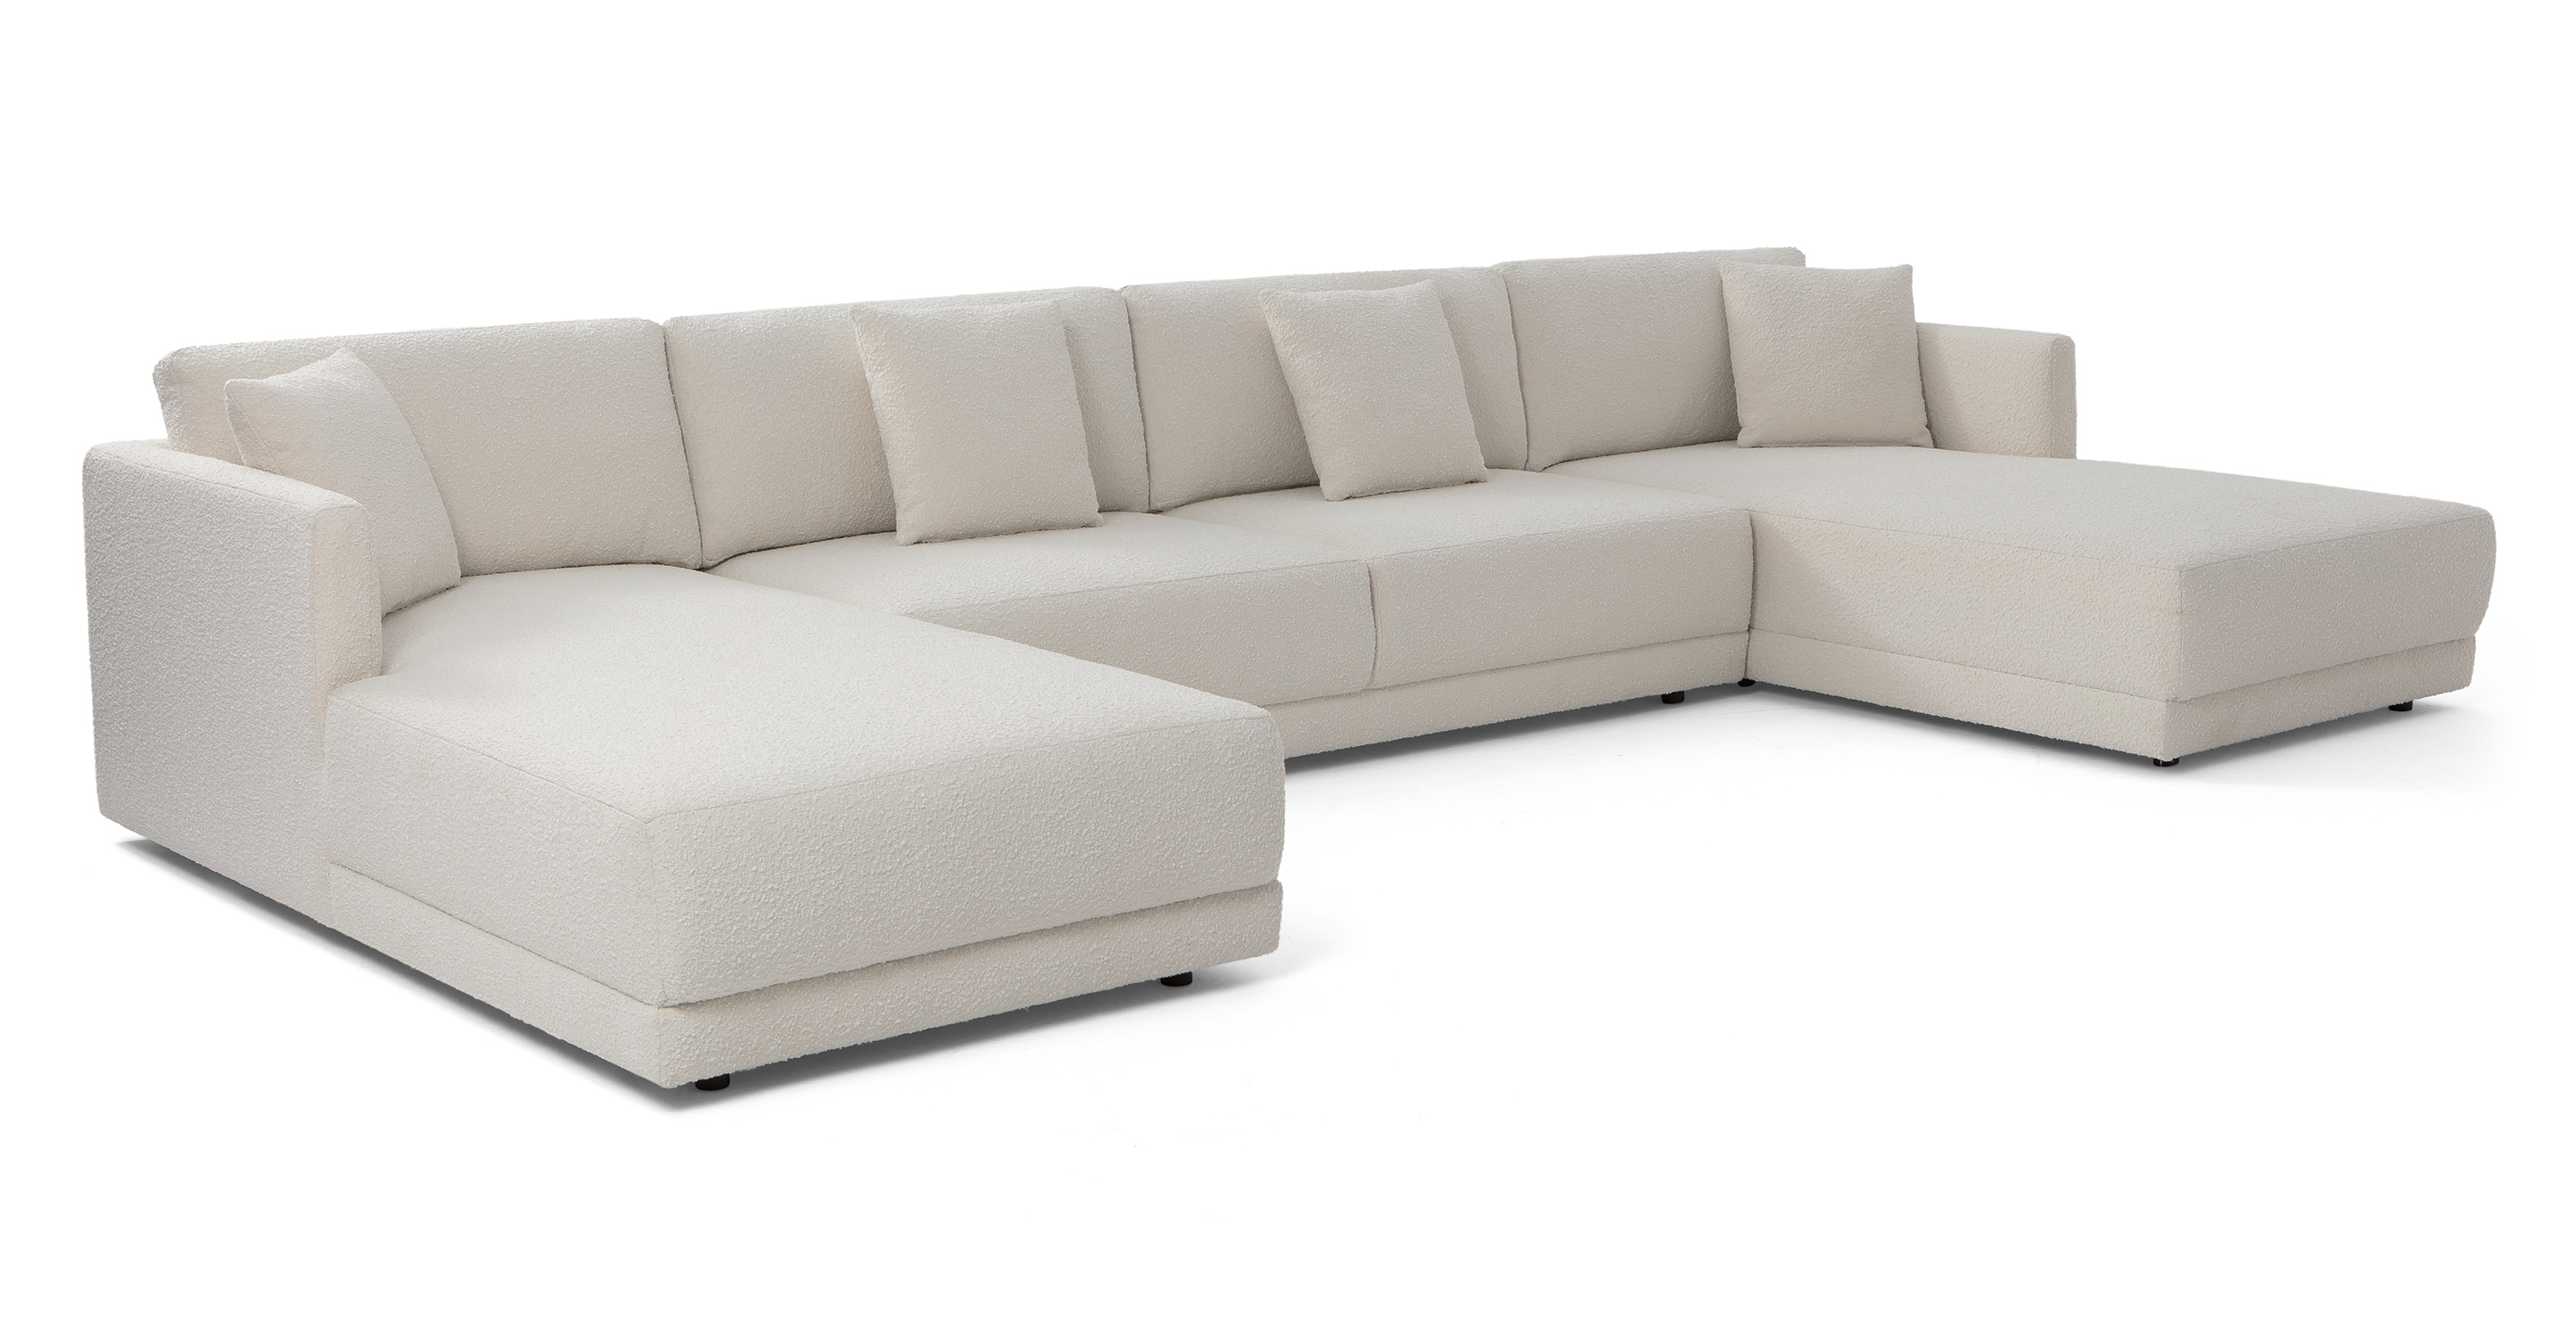 "Domus 155"" 3-pc U-Chaise Sofa Sectional, Blanc Boucle"